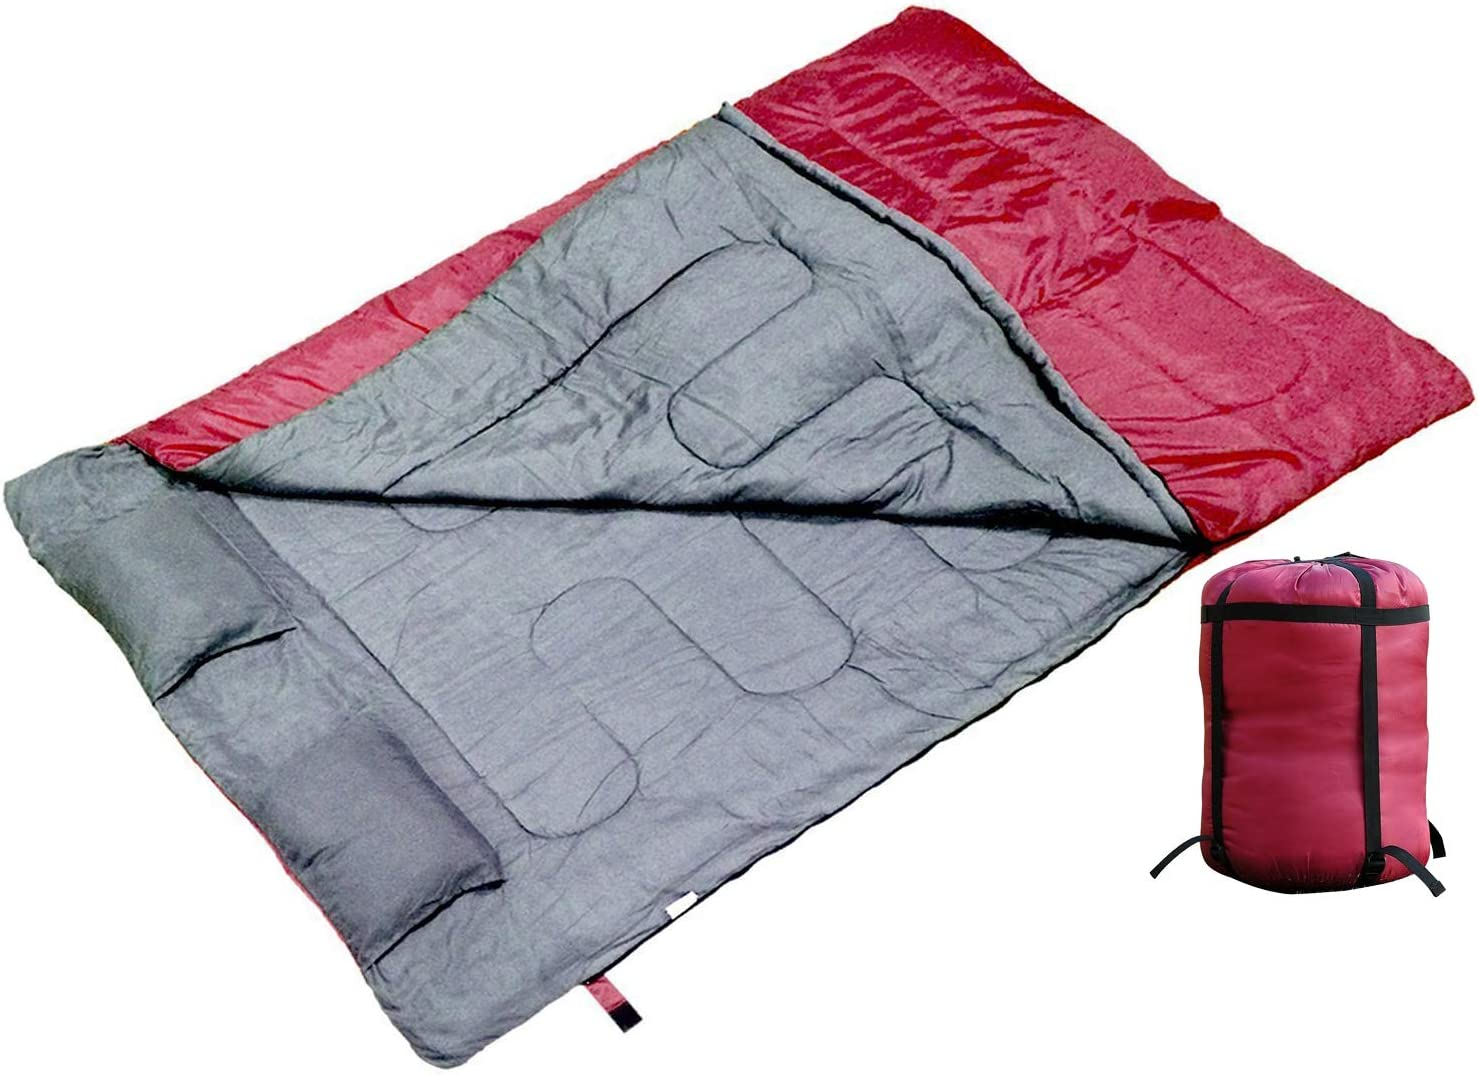 Tenive Double 2 Person Camping Hiking Double Wide Sleeping Bag with 2 Removable Pillows and a Carrying Bag